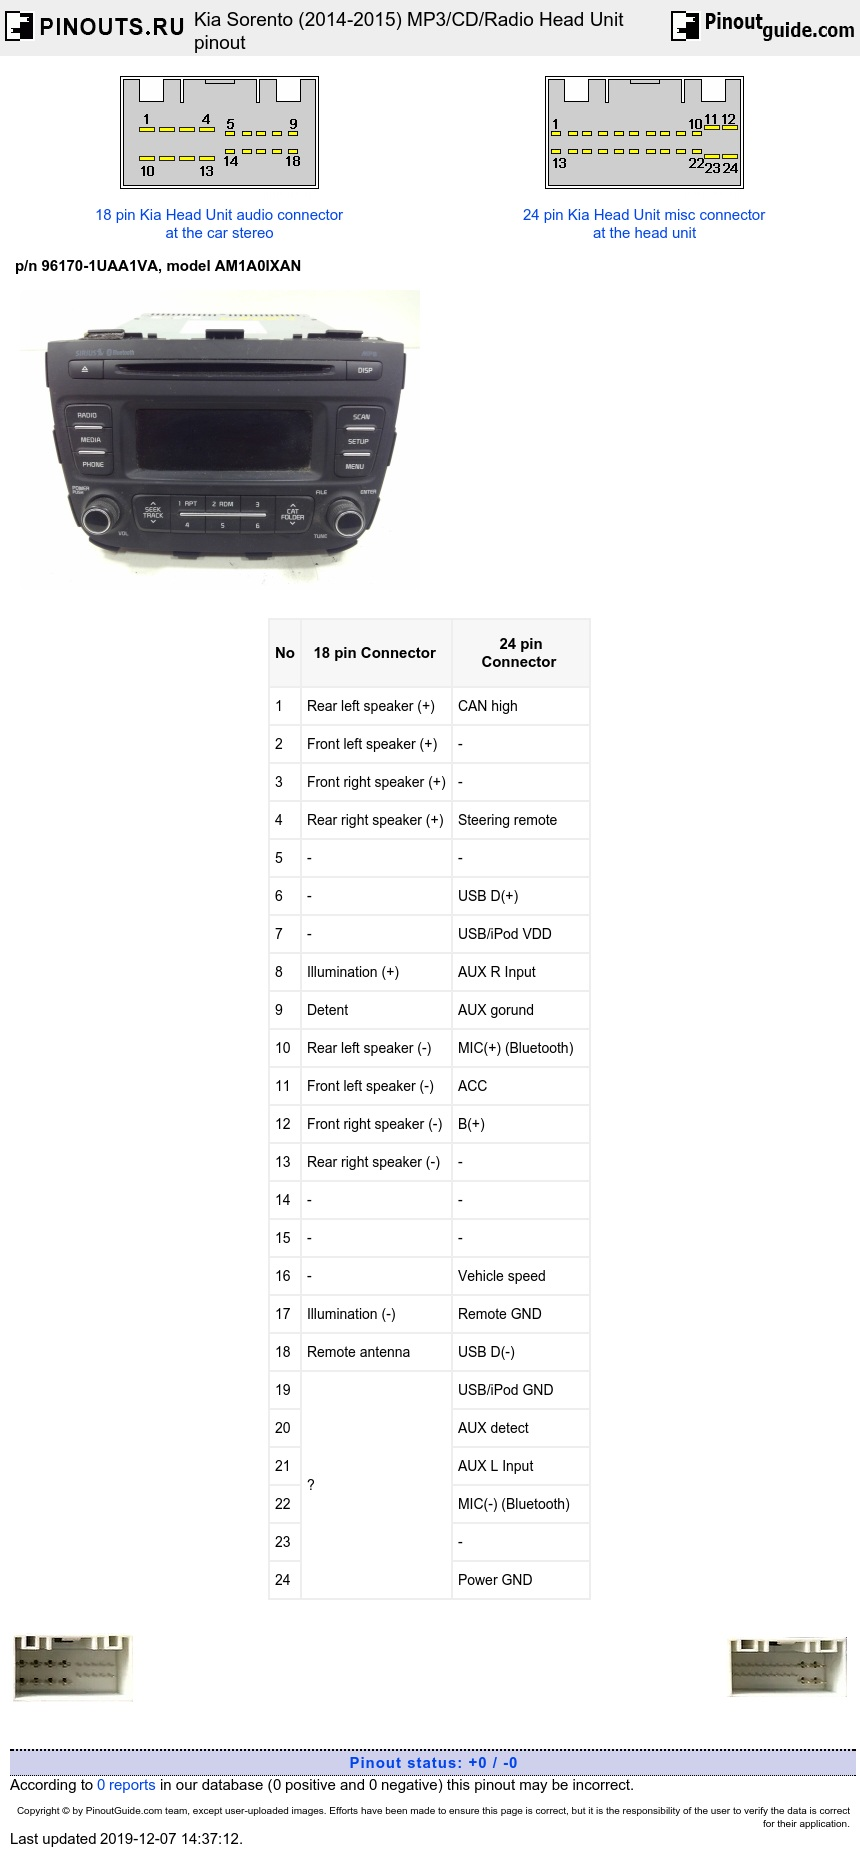 Kia Sorento (2014-2015) MP3/CD/Radio Head Unit diagram